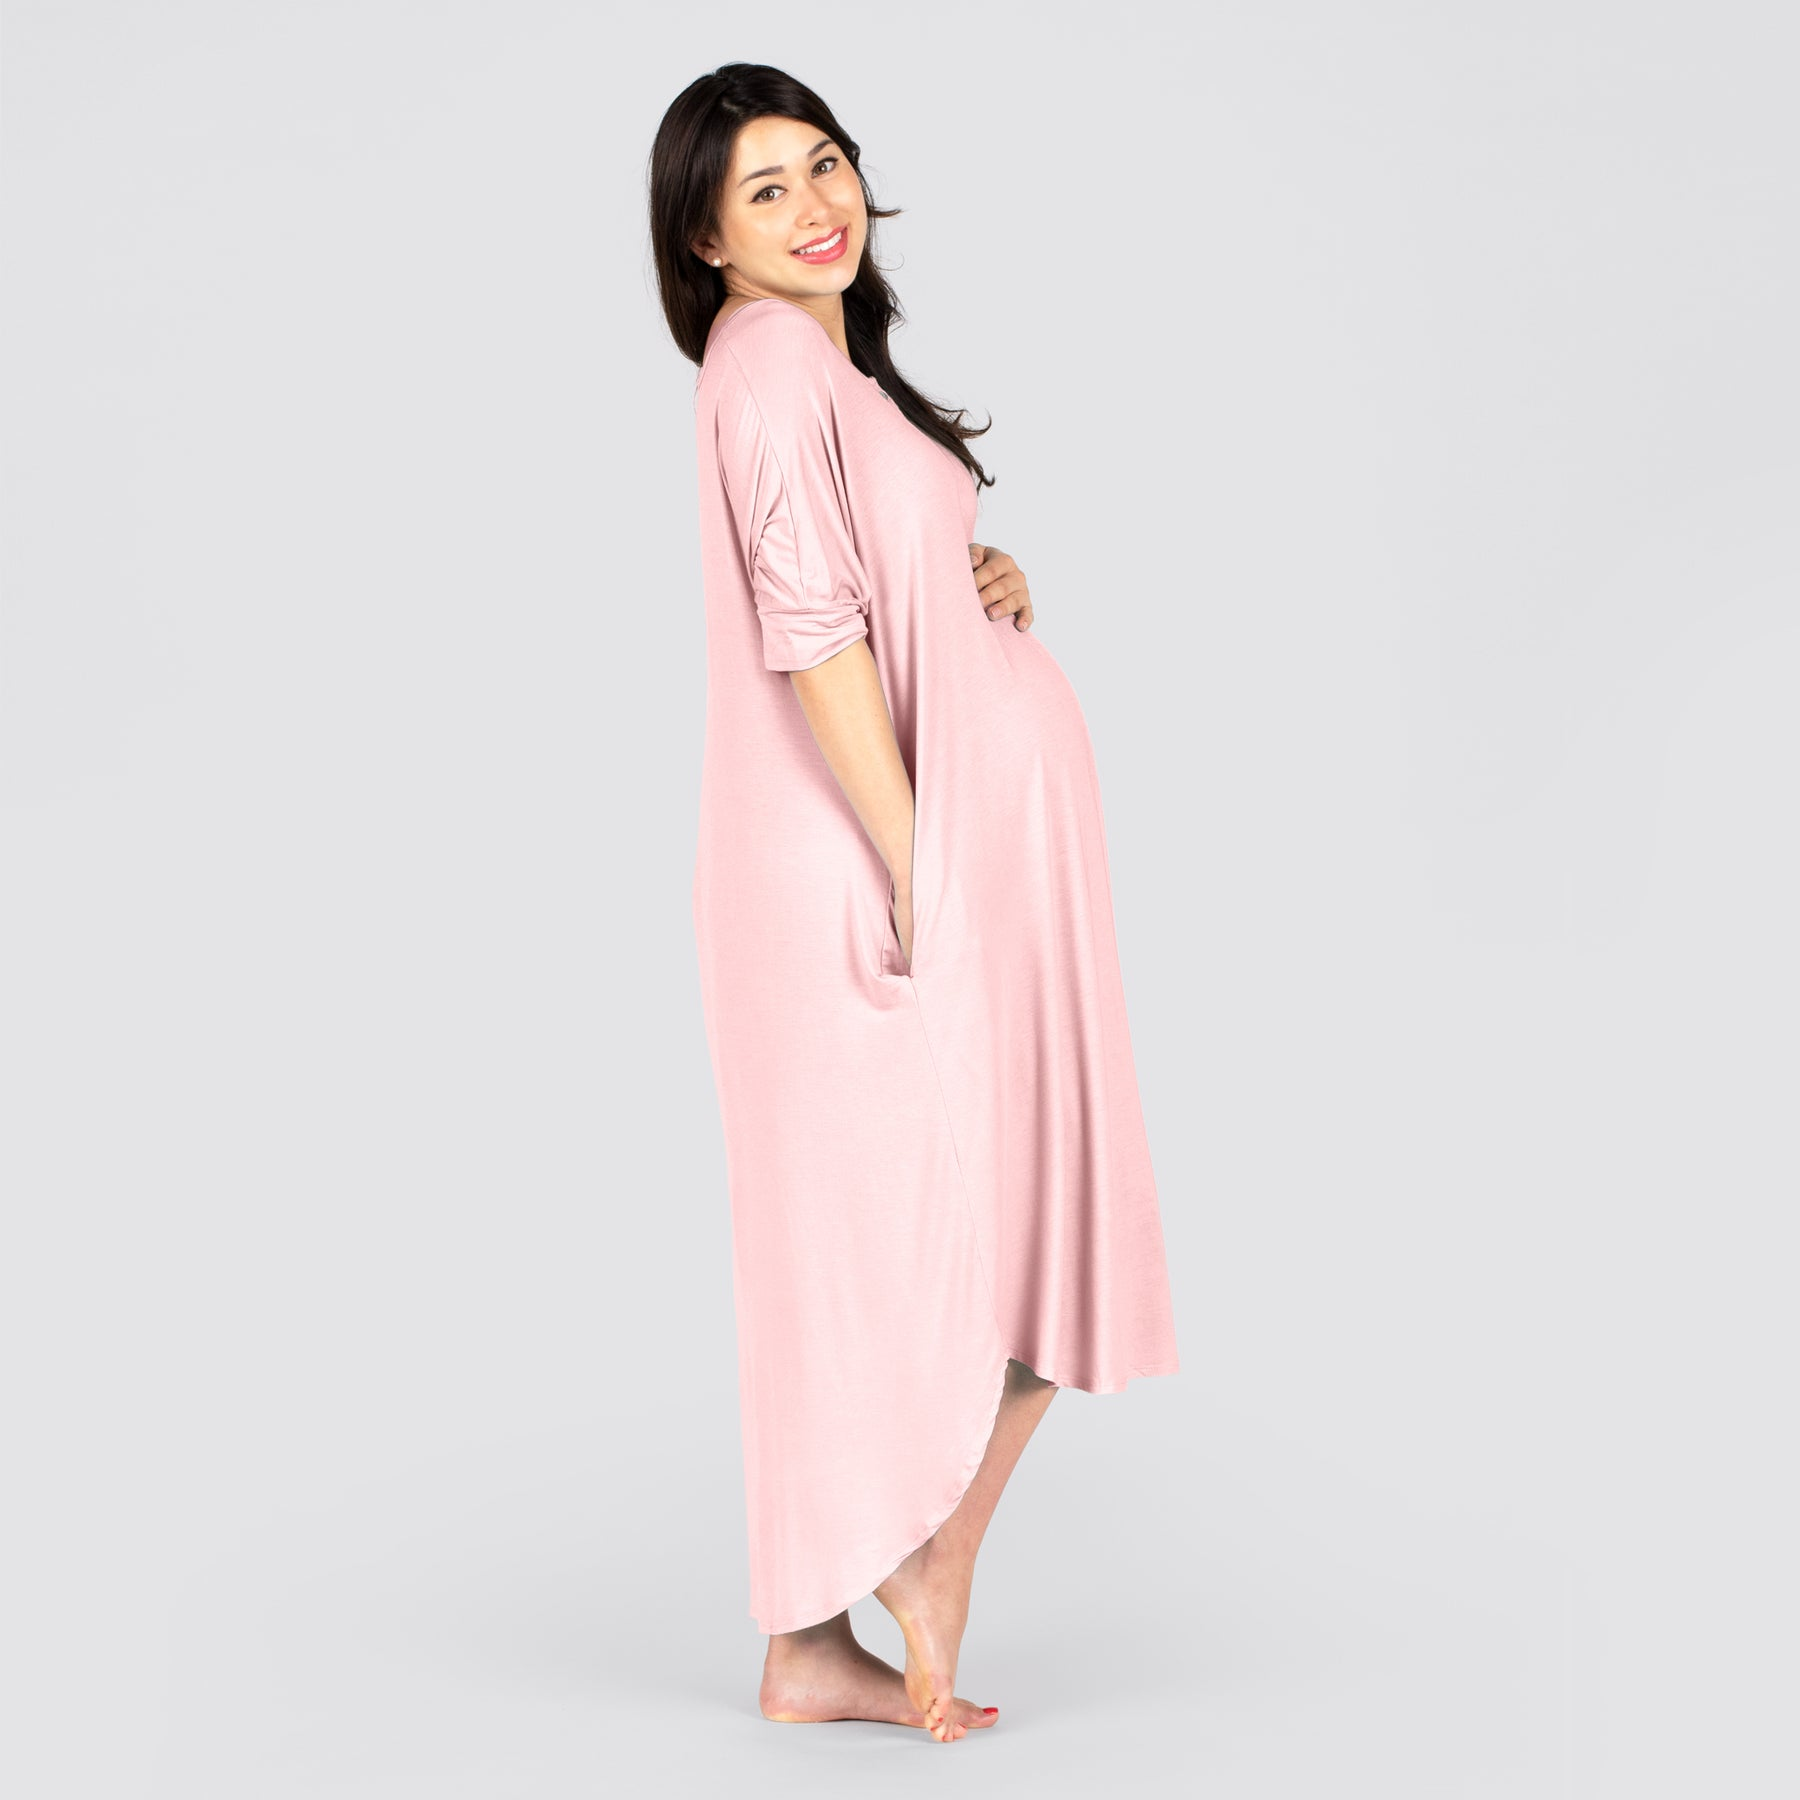 Made for pregnancy, labor, nursing, and beyond. The soft premium bamboo maternity dress is perfect for C-Sections and swelling when pants won't fit, this dress provides comfort while you heal. Buttons at the neckline makes breastfeeding a breeze.